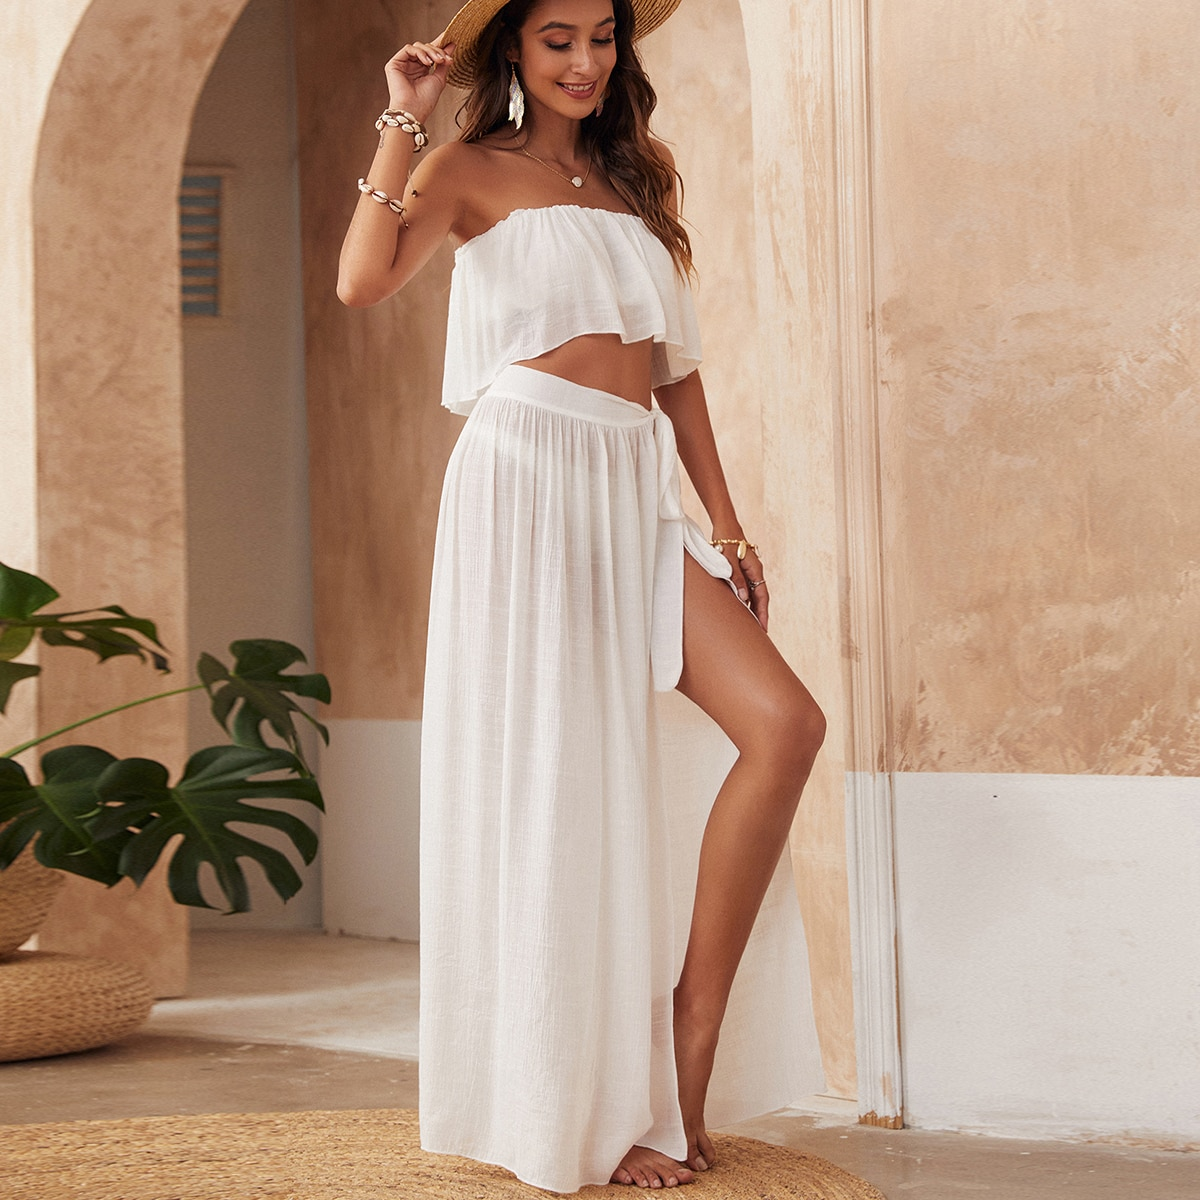 SHEIN / Bandeau Top & Tie Side Skirt Cover Up Set